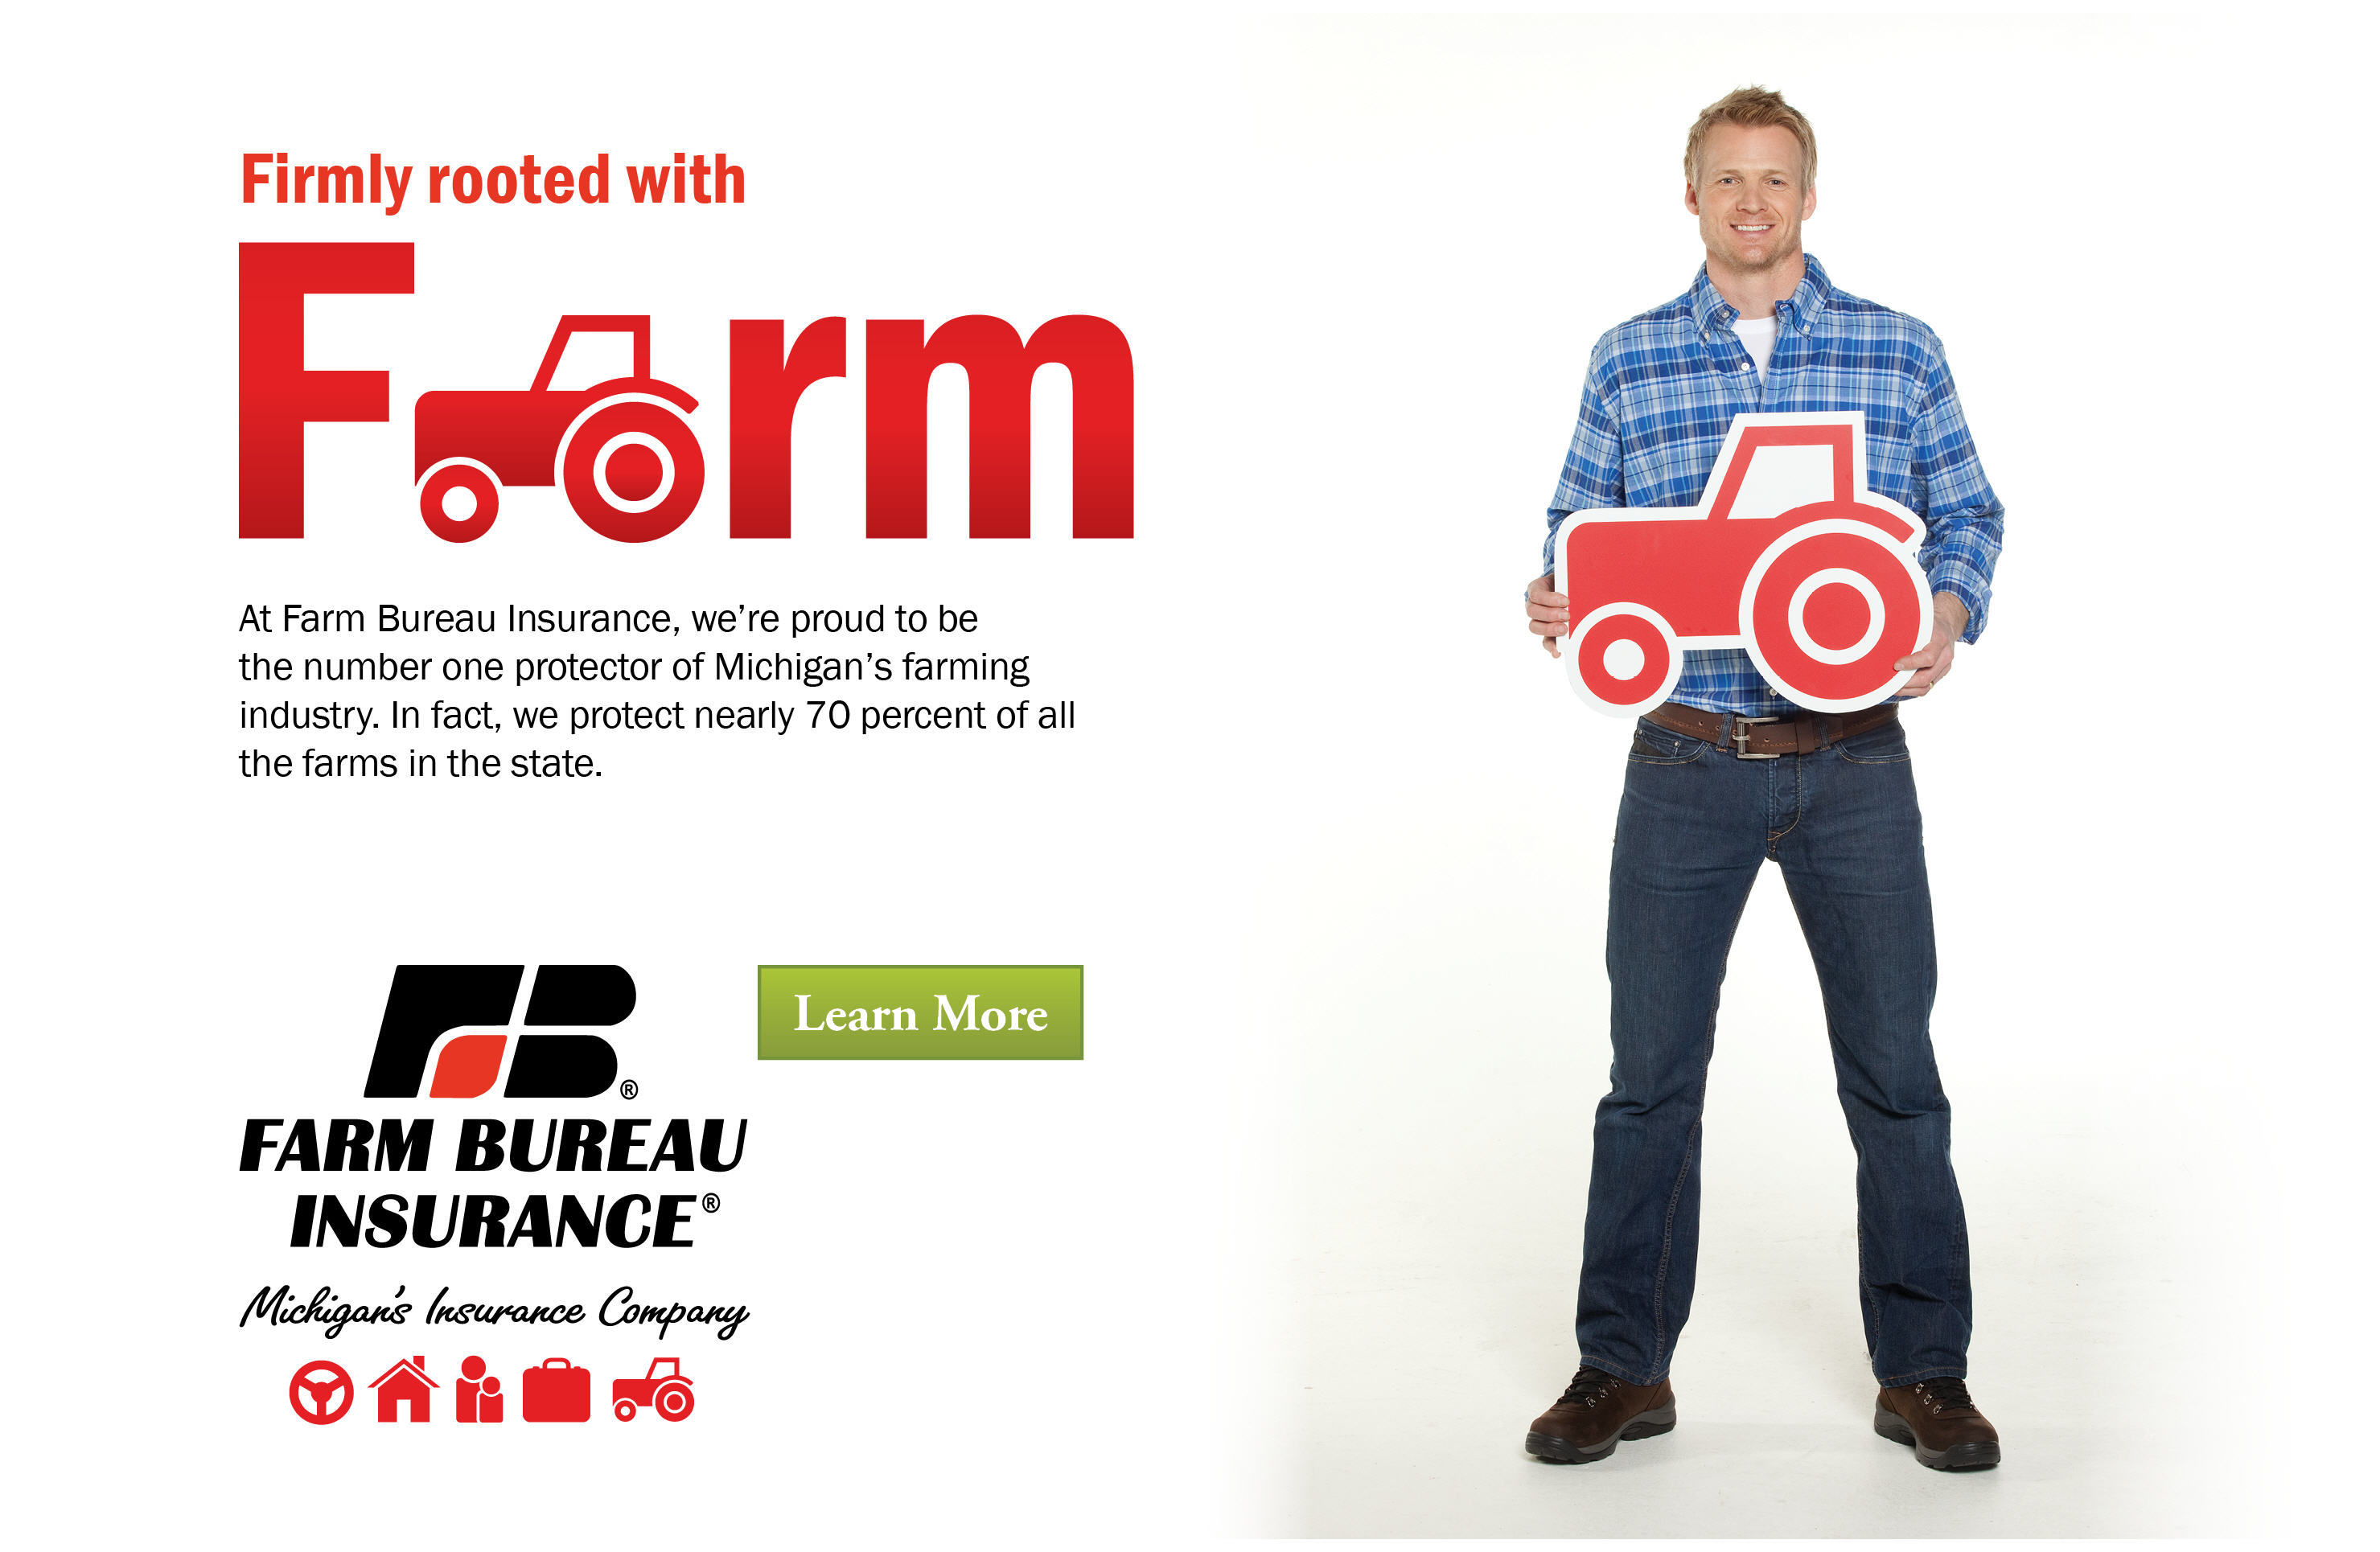 Firmly rooted with farm insurance.